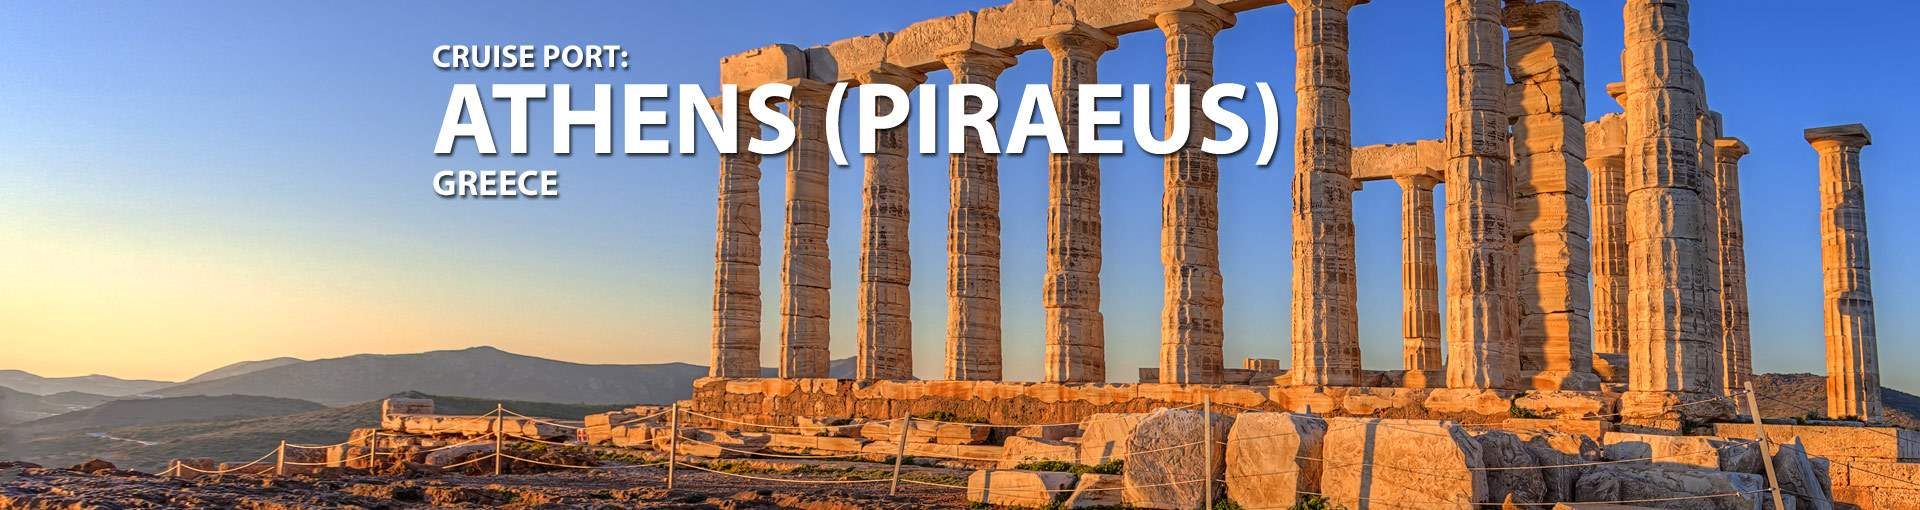 Cruises to Piraeus (Athens), Greece